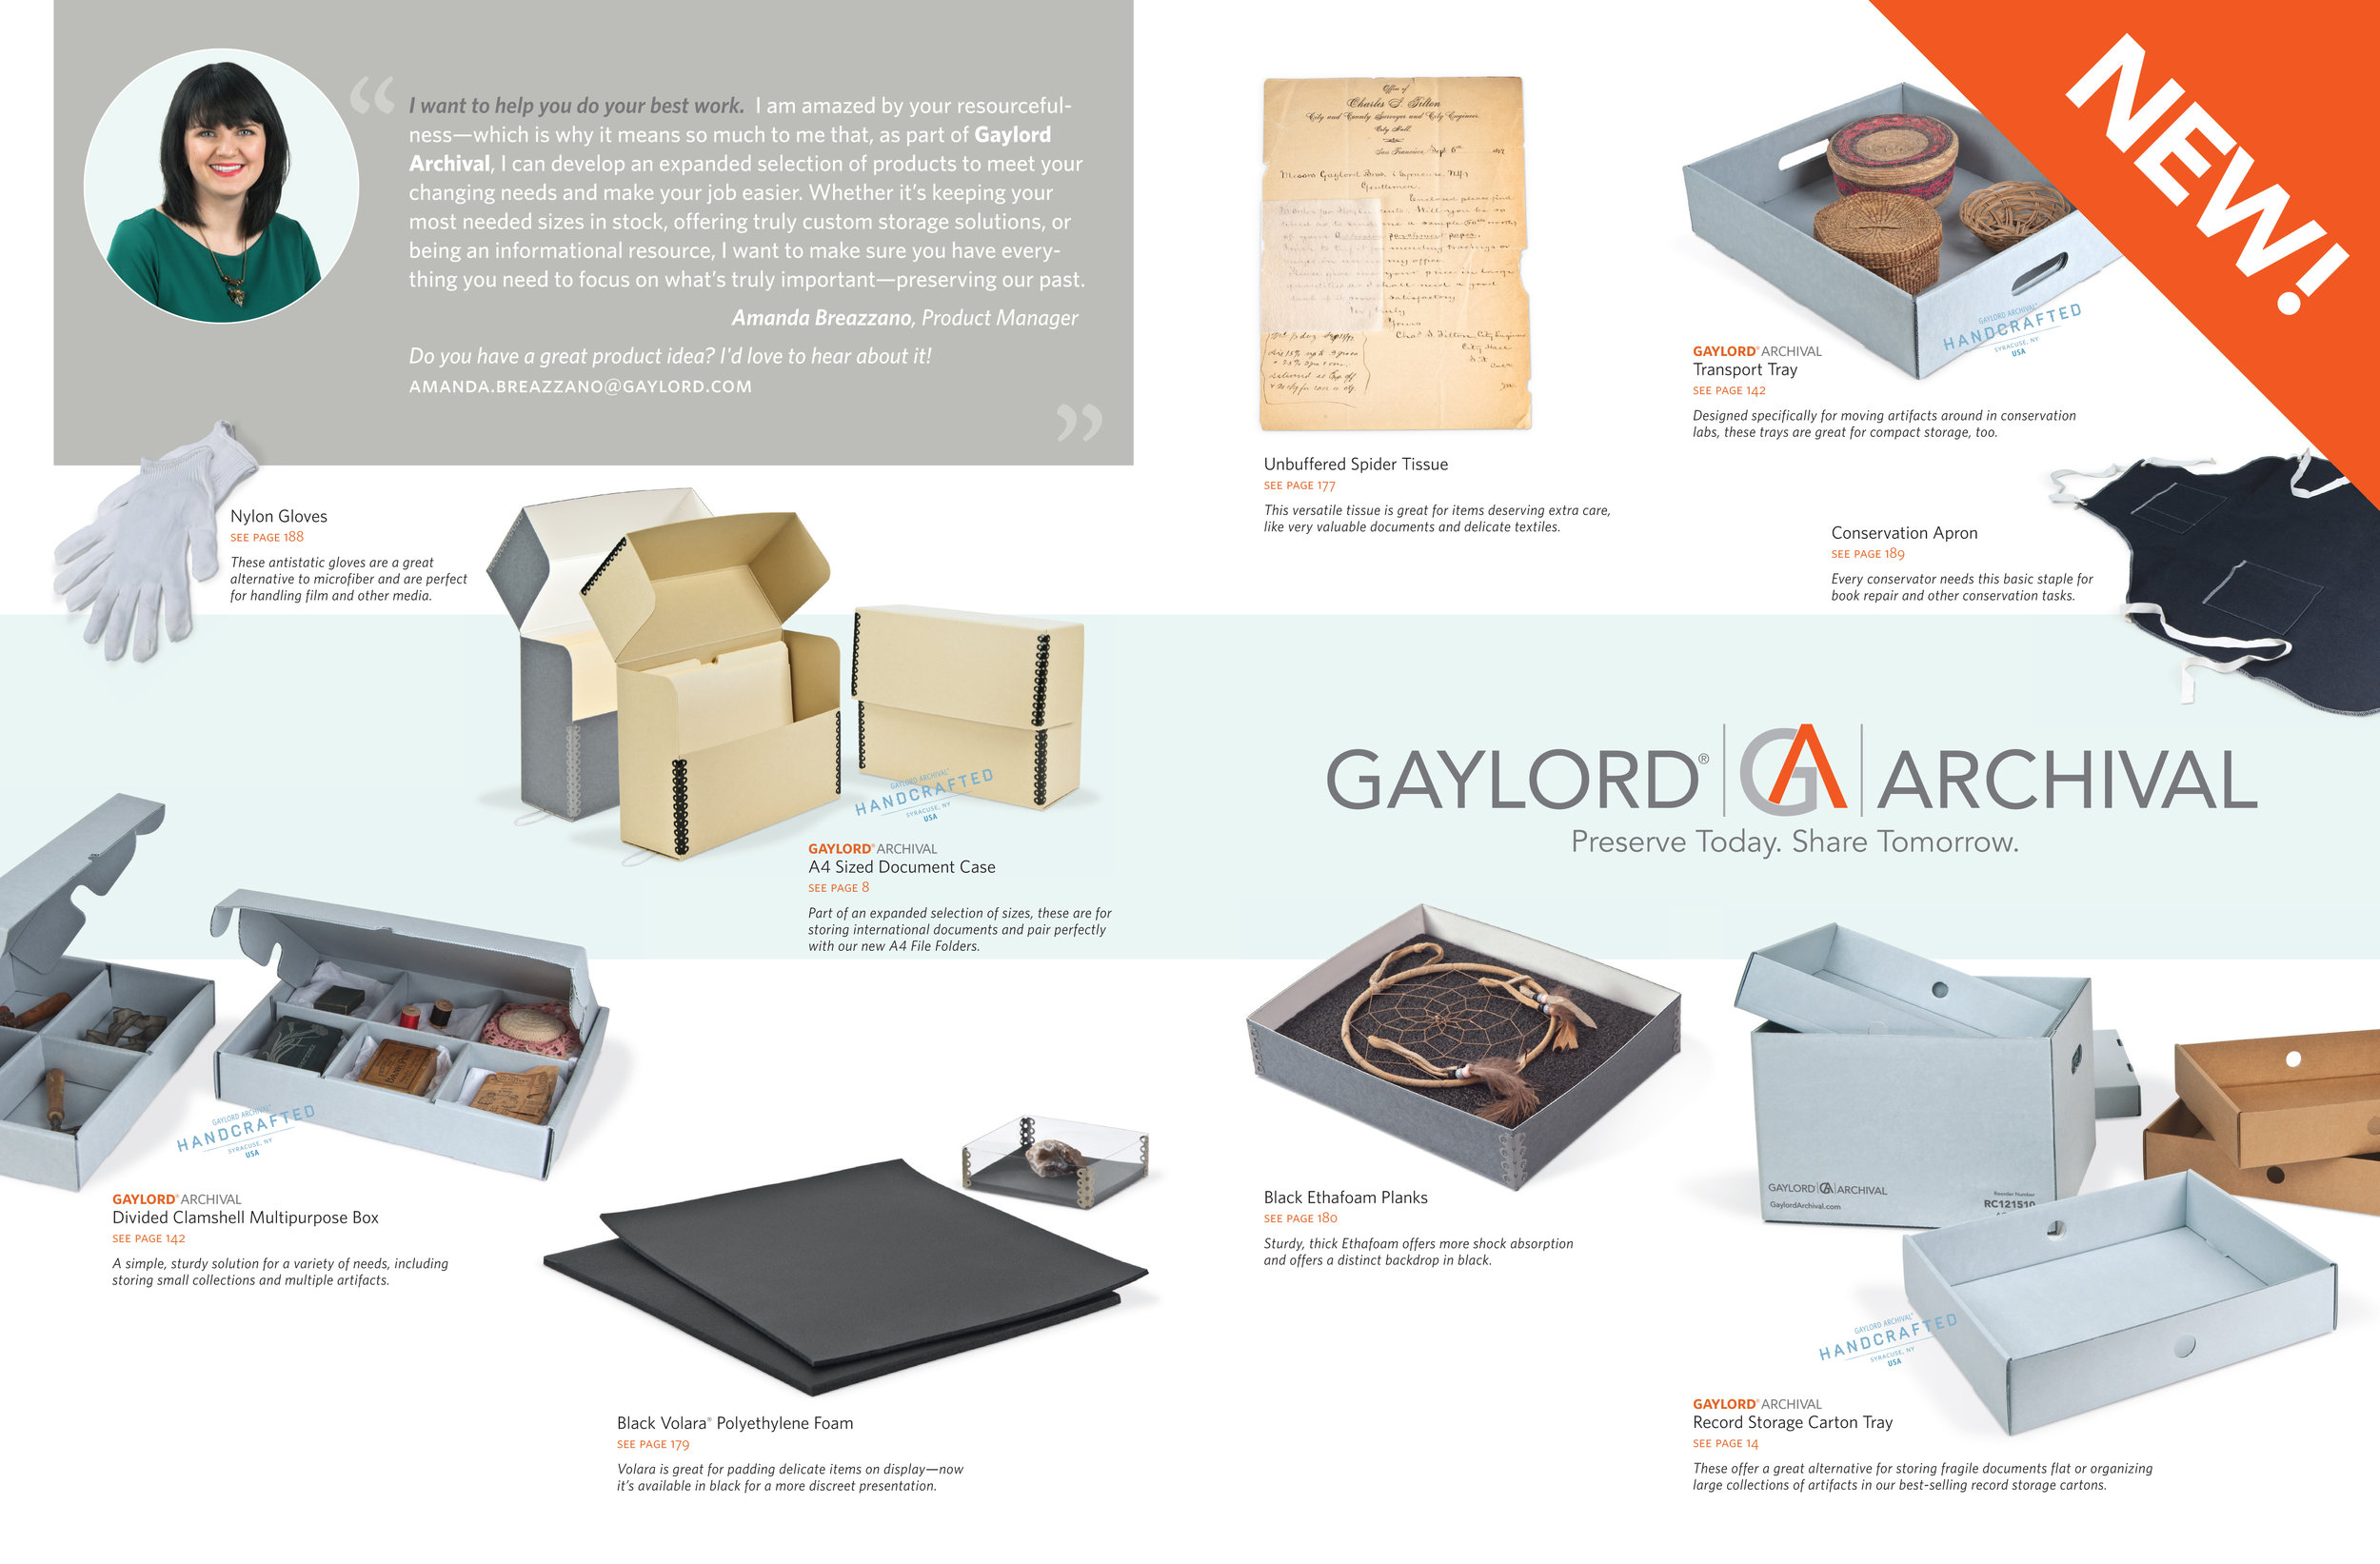 Document Storage & Preservation, new product spread